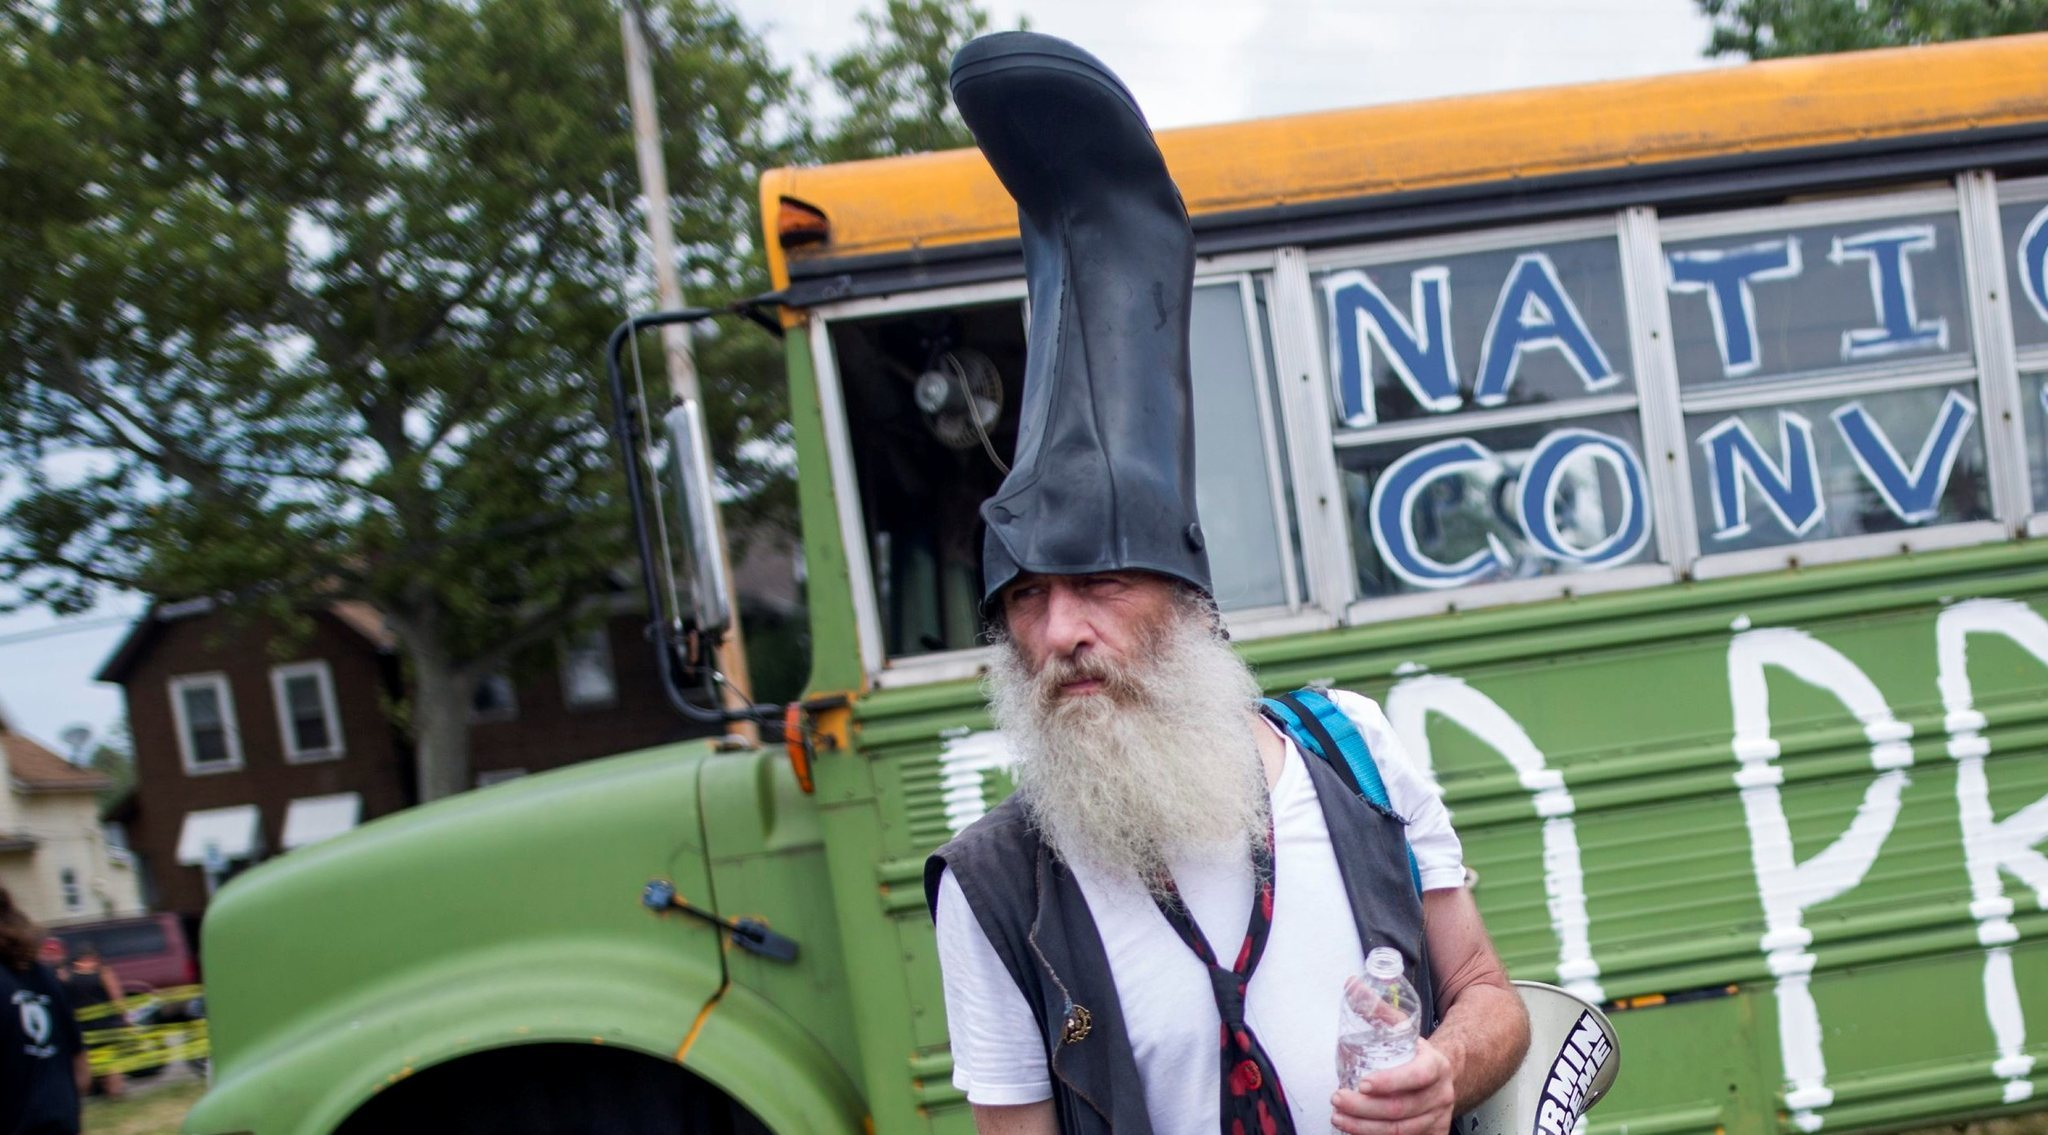 Performance artist, activist and perennial political candidate Vermin Supreme, seen earlier in the Republican National Convention